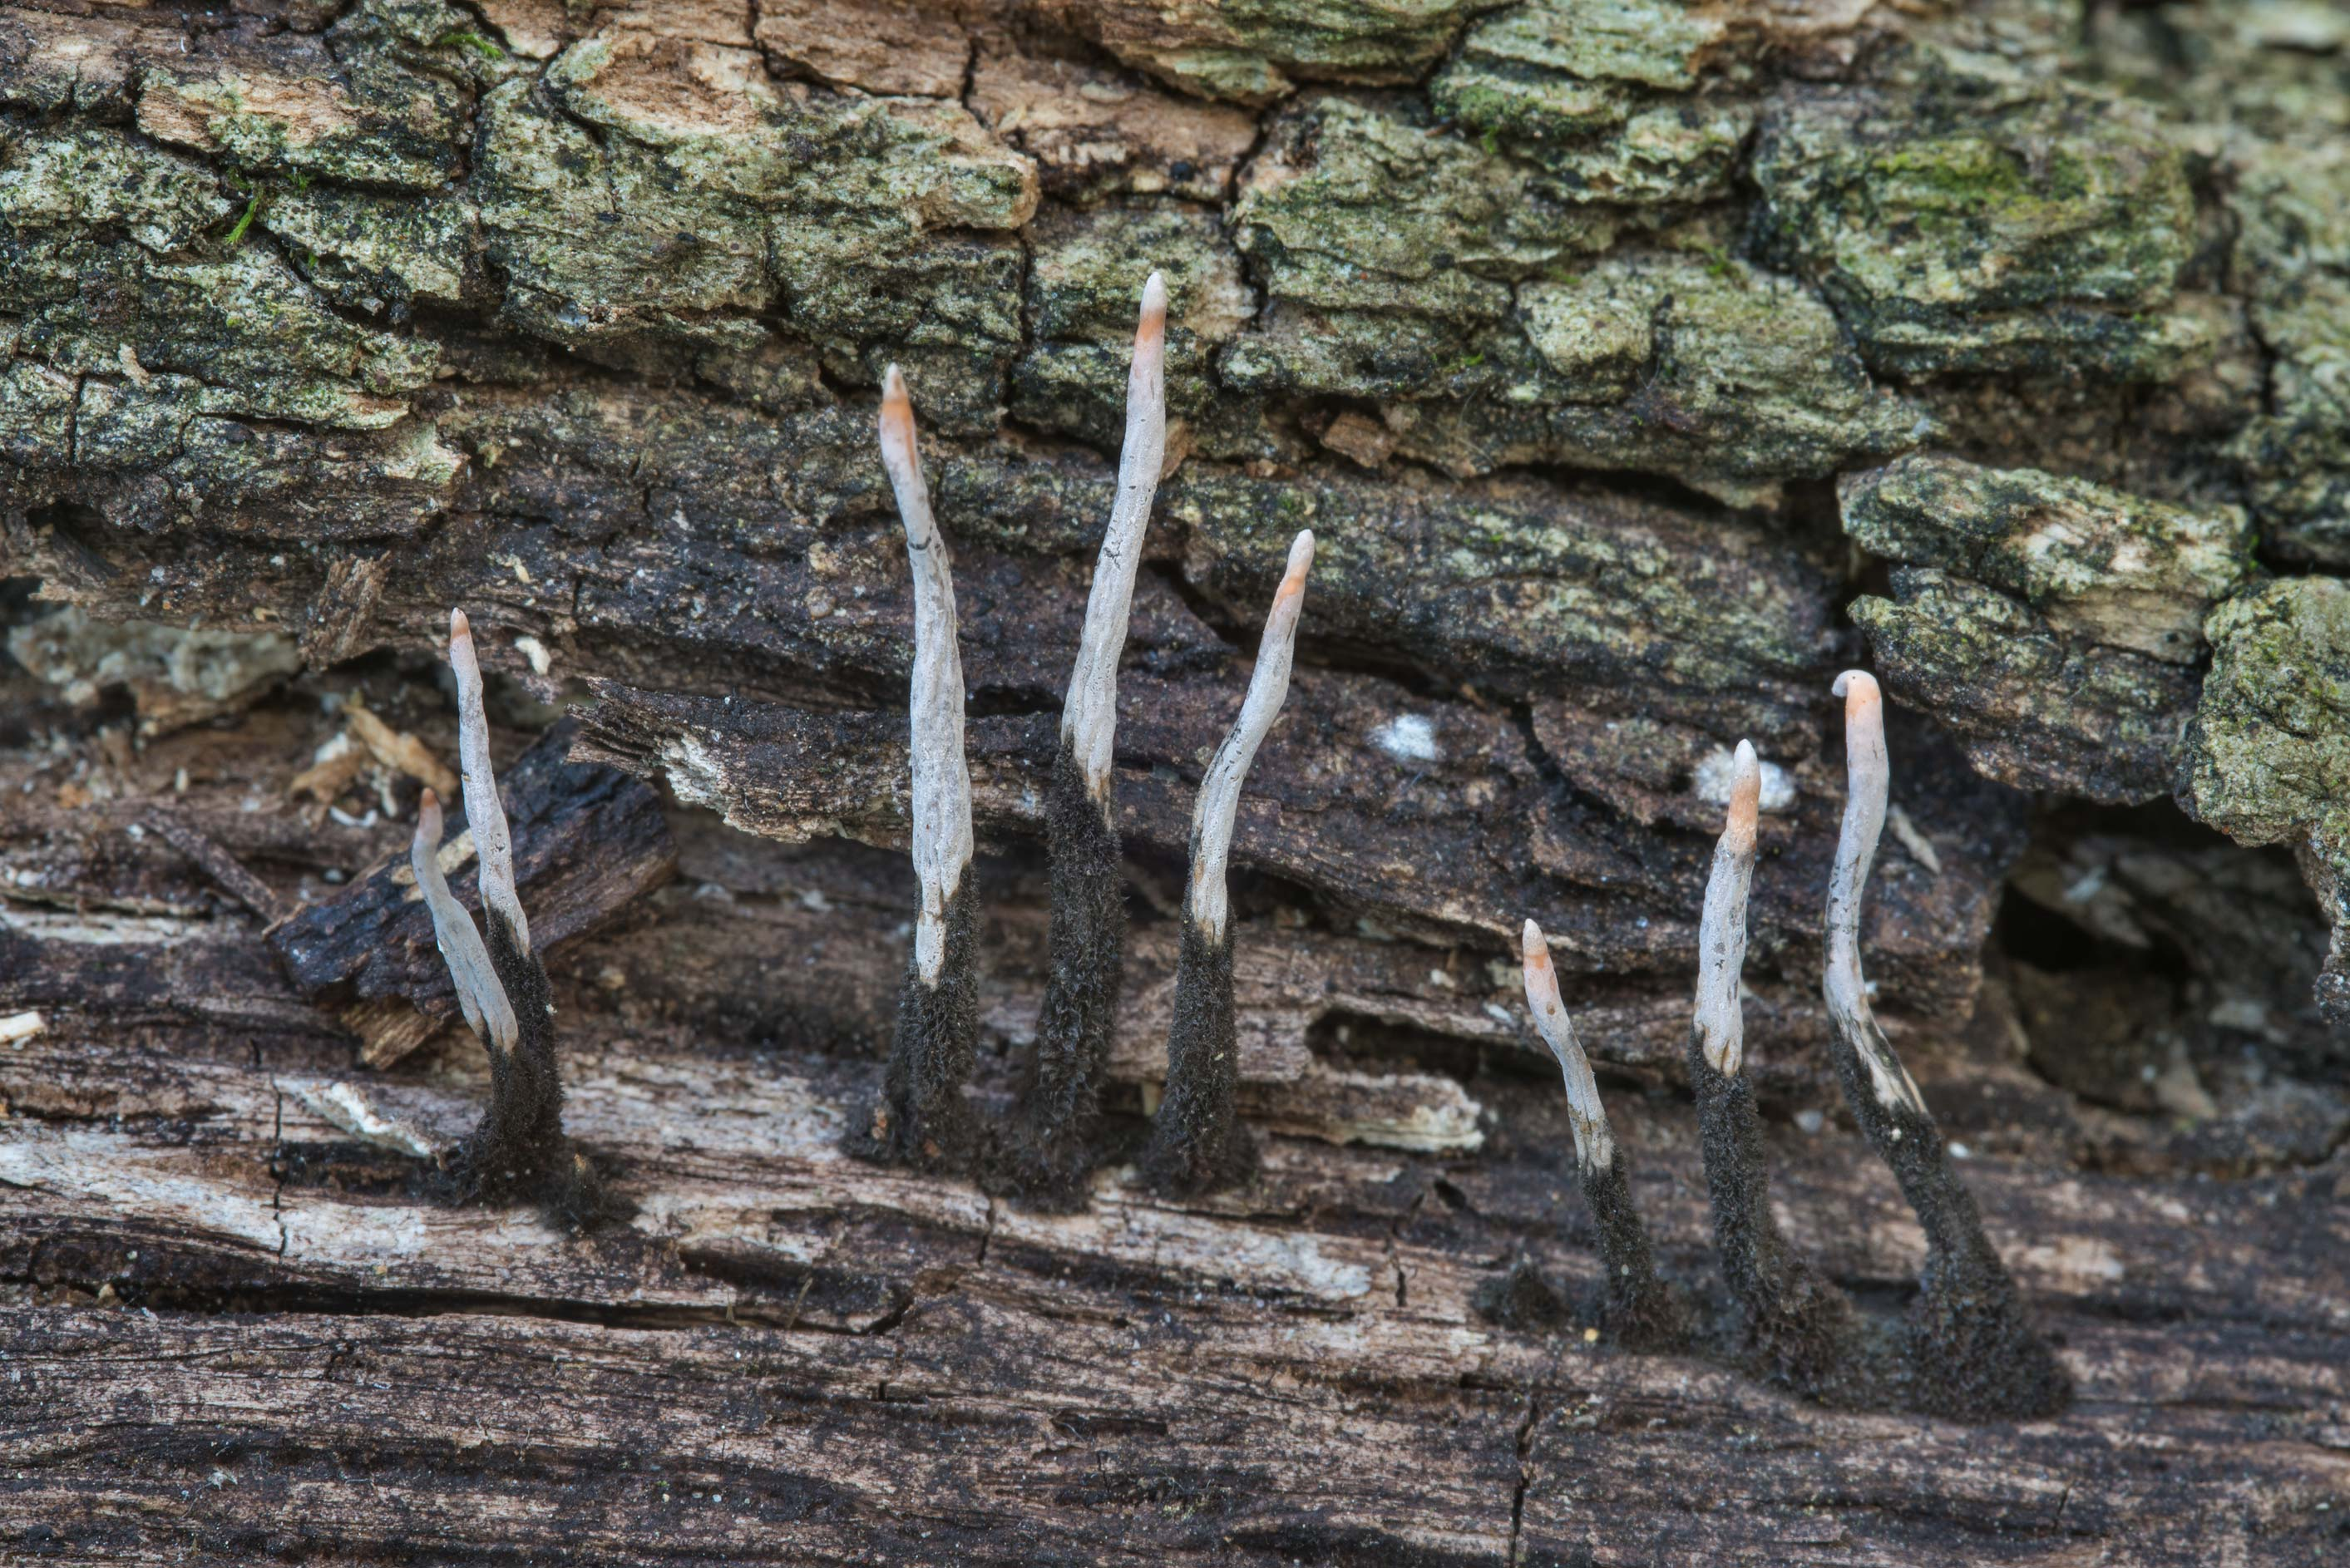 Candlesnuff fungus (Xylaria hypoxylon) on Kiwanis Nature Trail. College Station, Texas